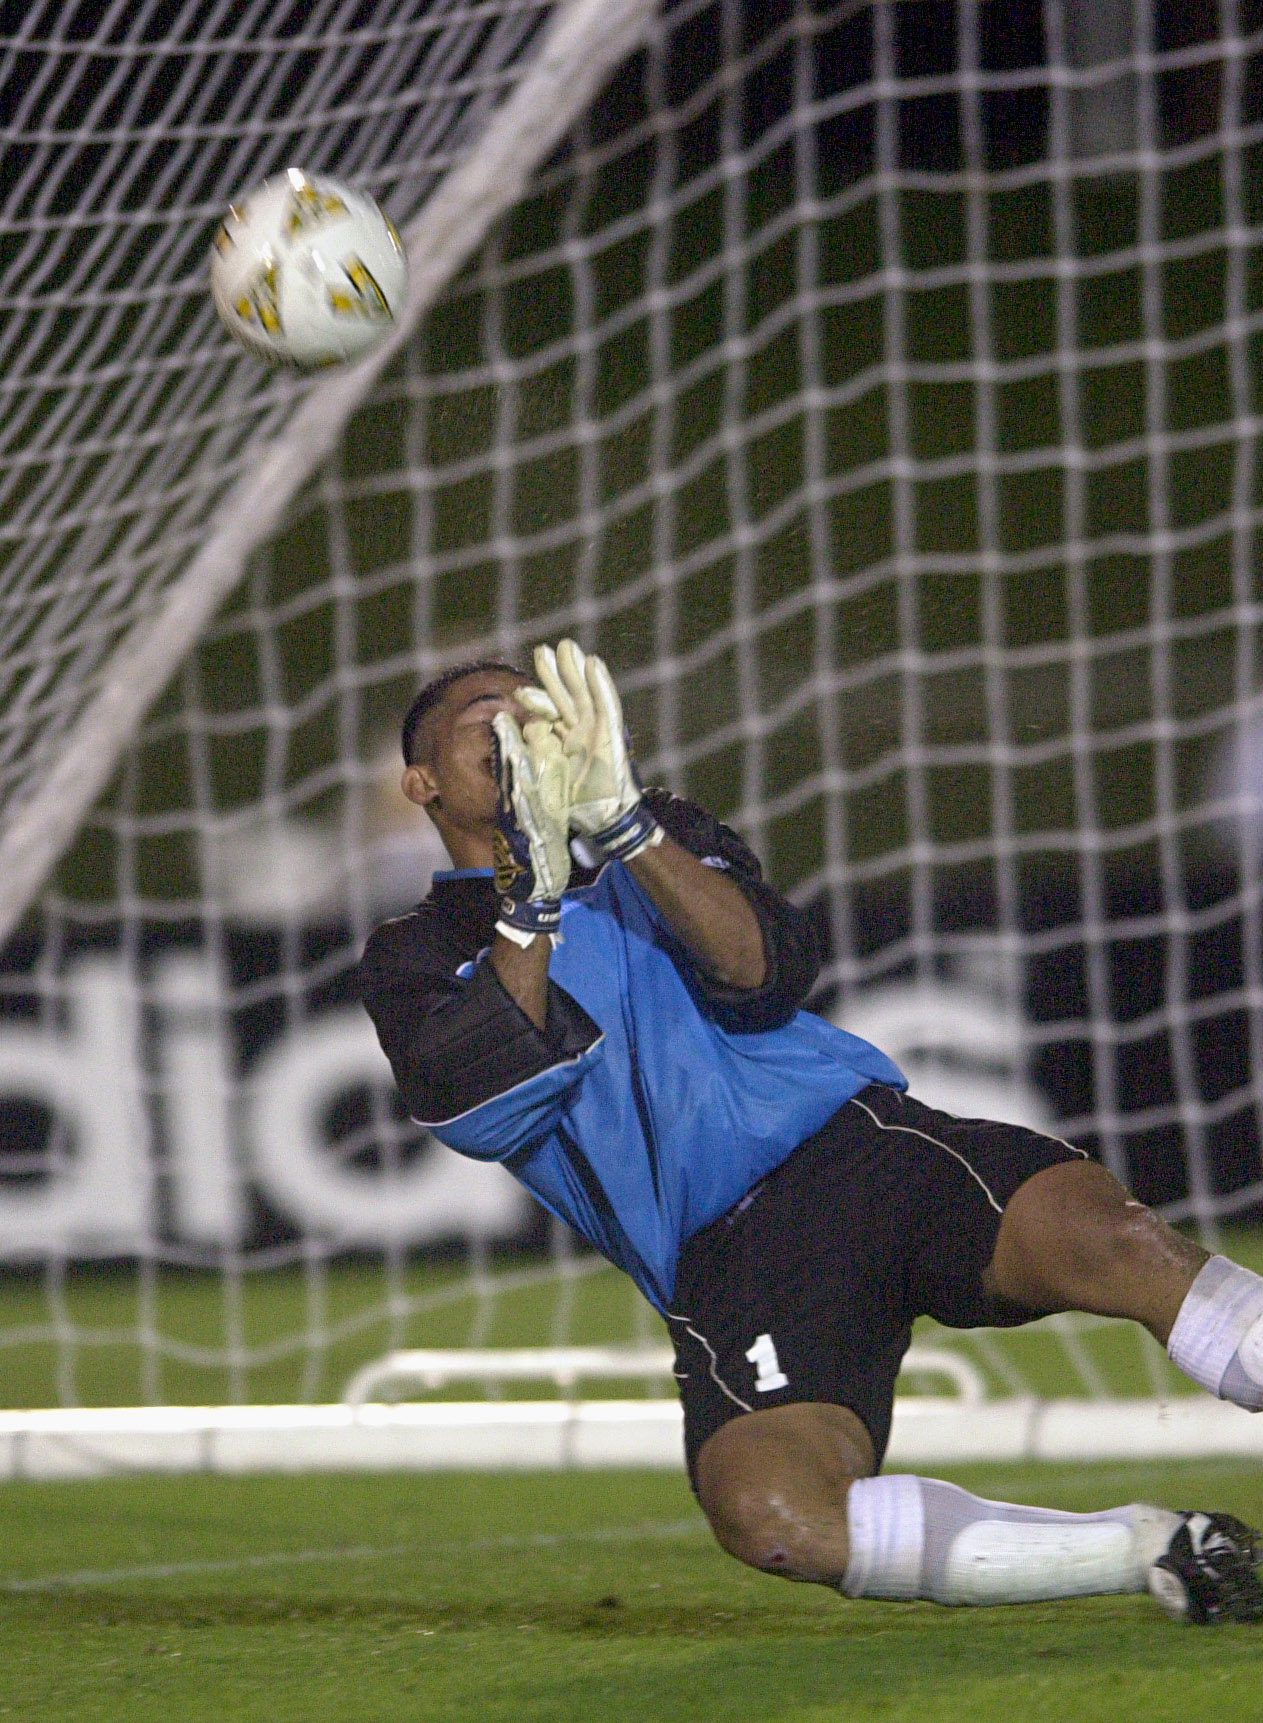 07 Apr 2001:  Nicky Salapu #1 of American Samoa dives in vain to stop a goal against Fiji during the Oceania group one World Cup qualifier match between Fiji and American Samoa played at the Coffs Harbour International Sports Stadium in Coffs Harbour, Aus